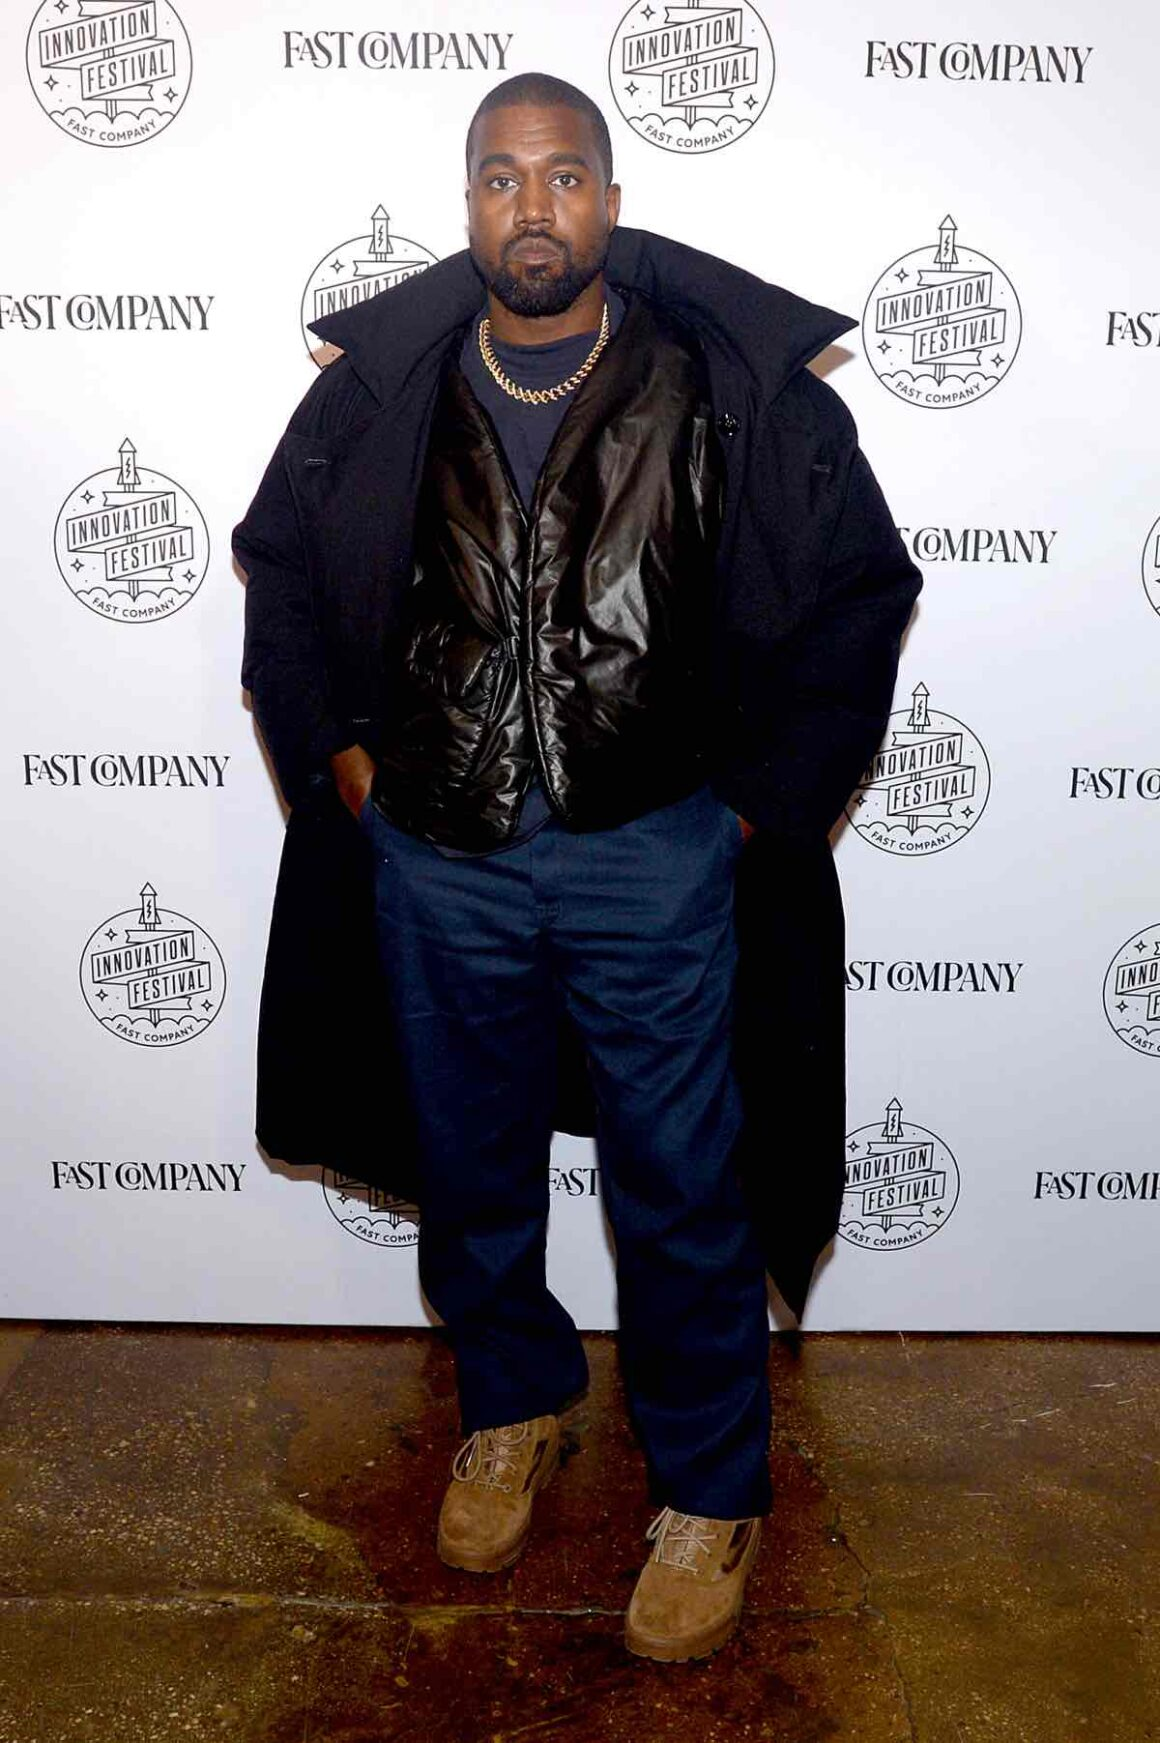 Kanye West attends Fast Company Innovation Festival - Day 3 Arrivals